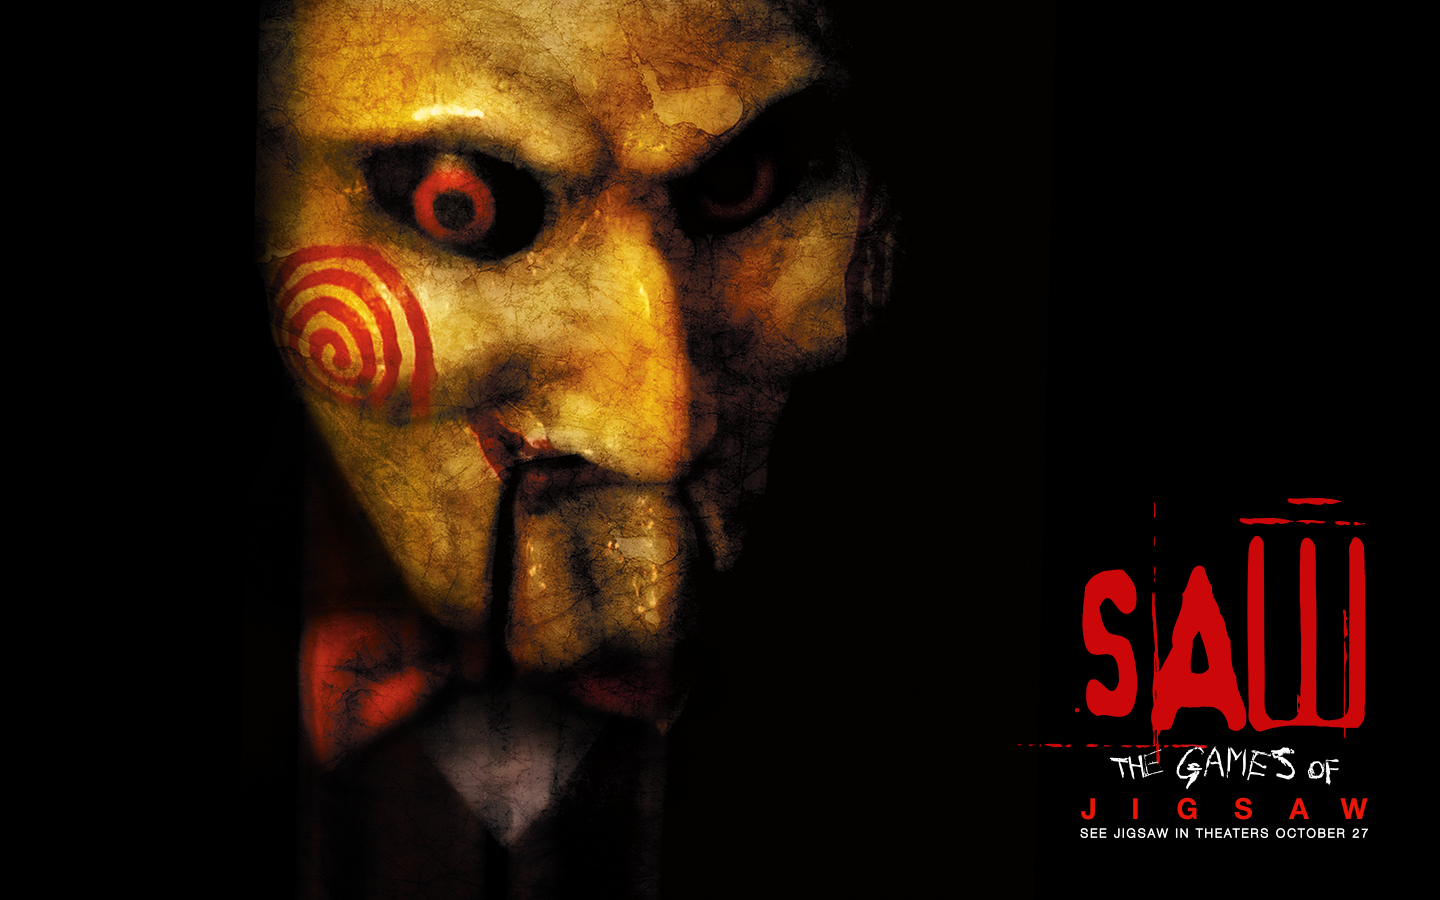 all new maze to feature a first look at lionsgates upcoming eighth saw film jigsaw debuting at the nations premier halloween events in hollywood and